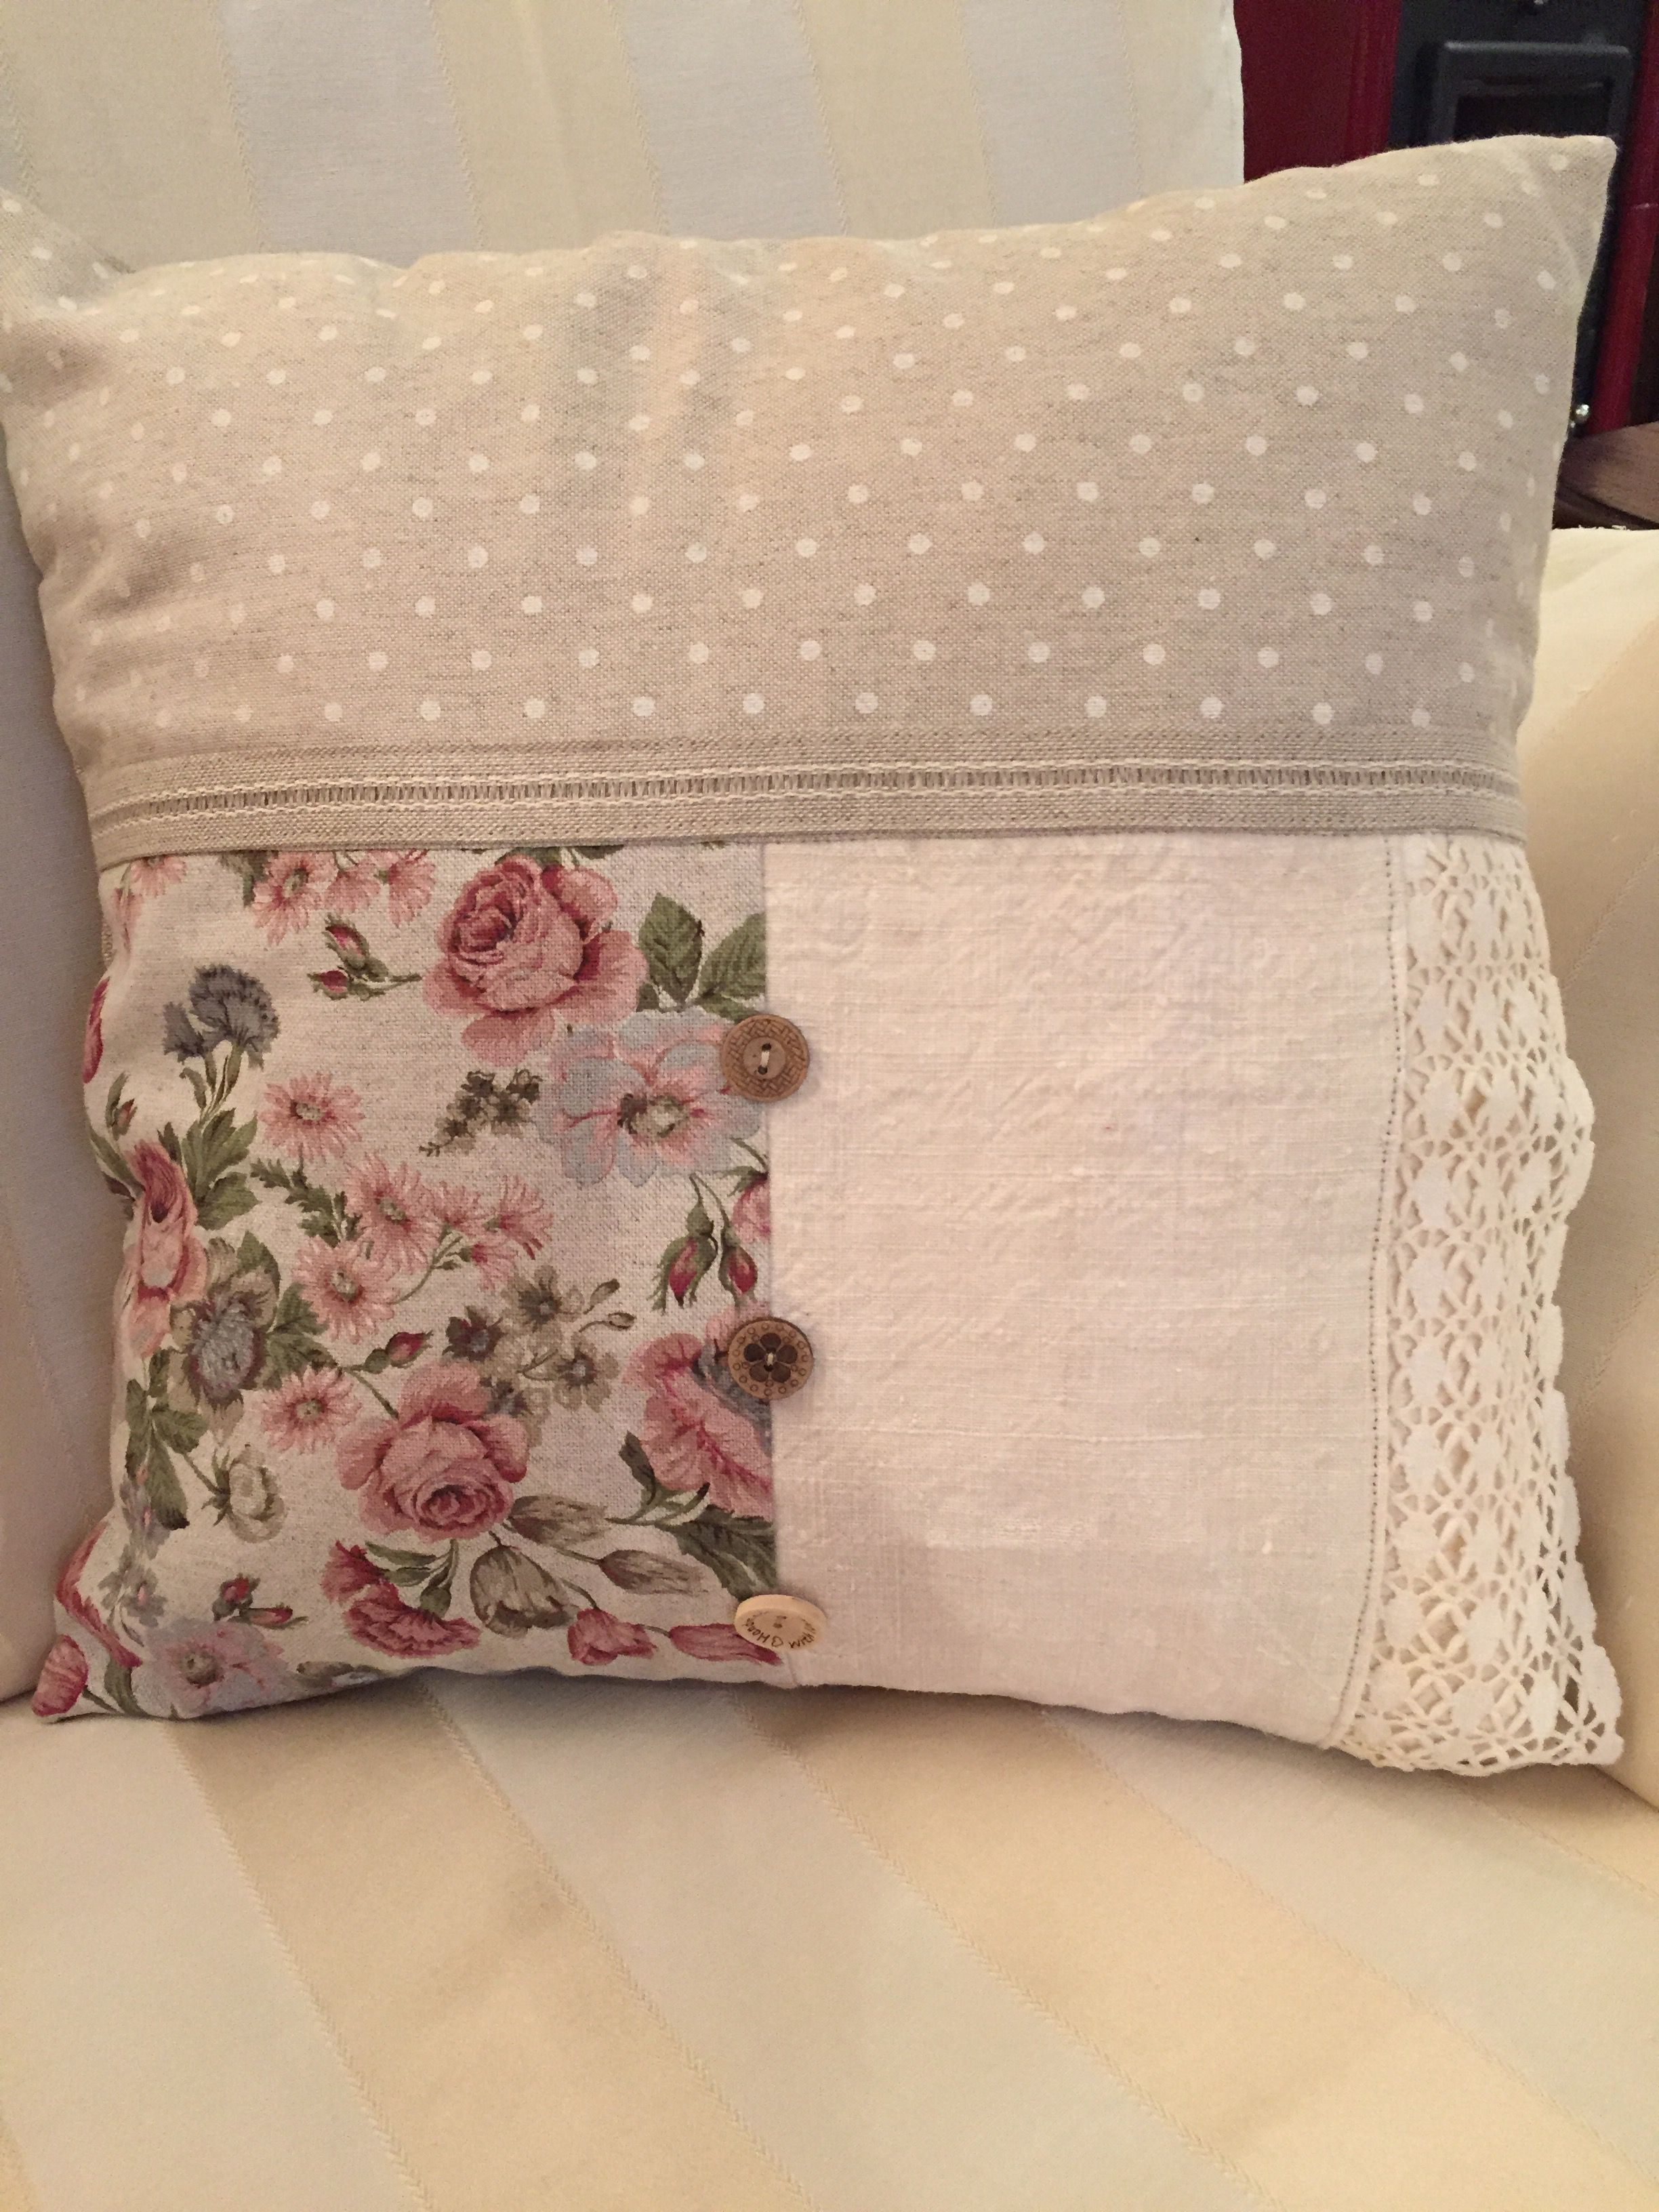 pois floreal cotton white buttons zip pink pillow mixed flax lace flowers beige square